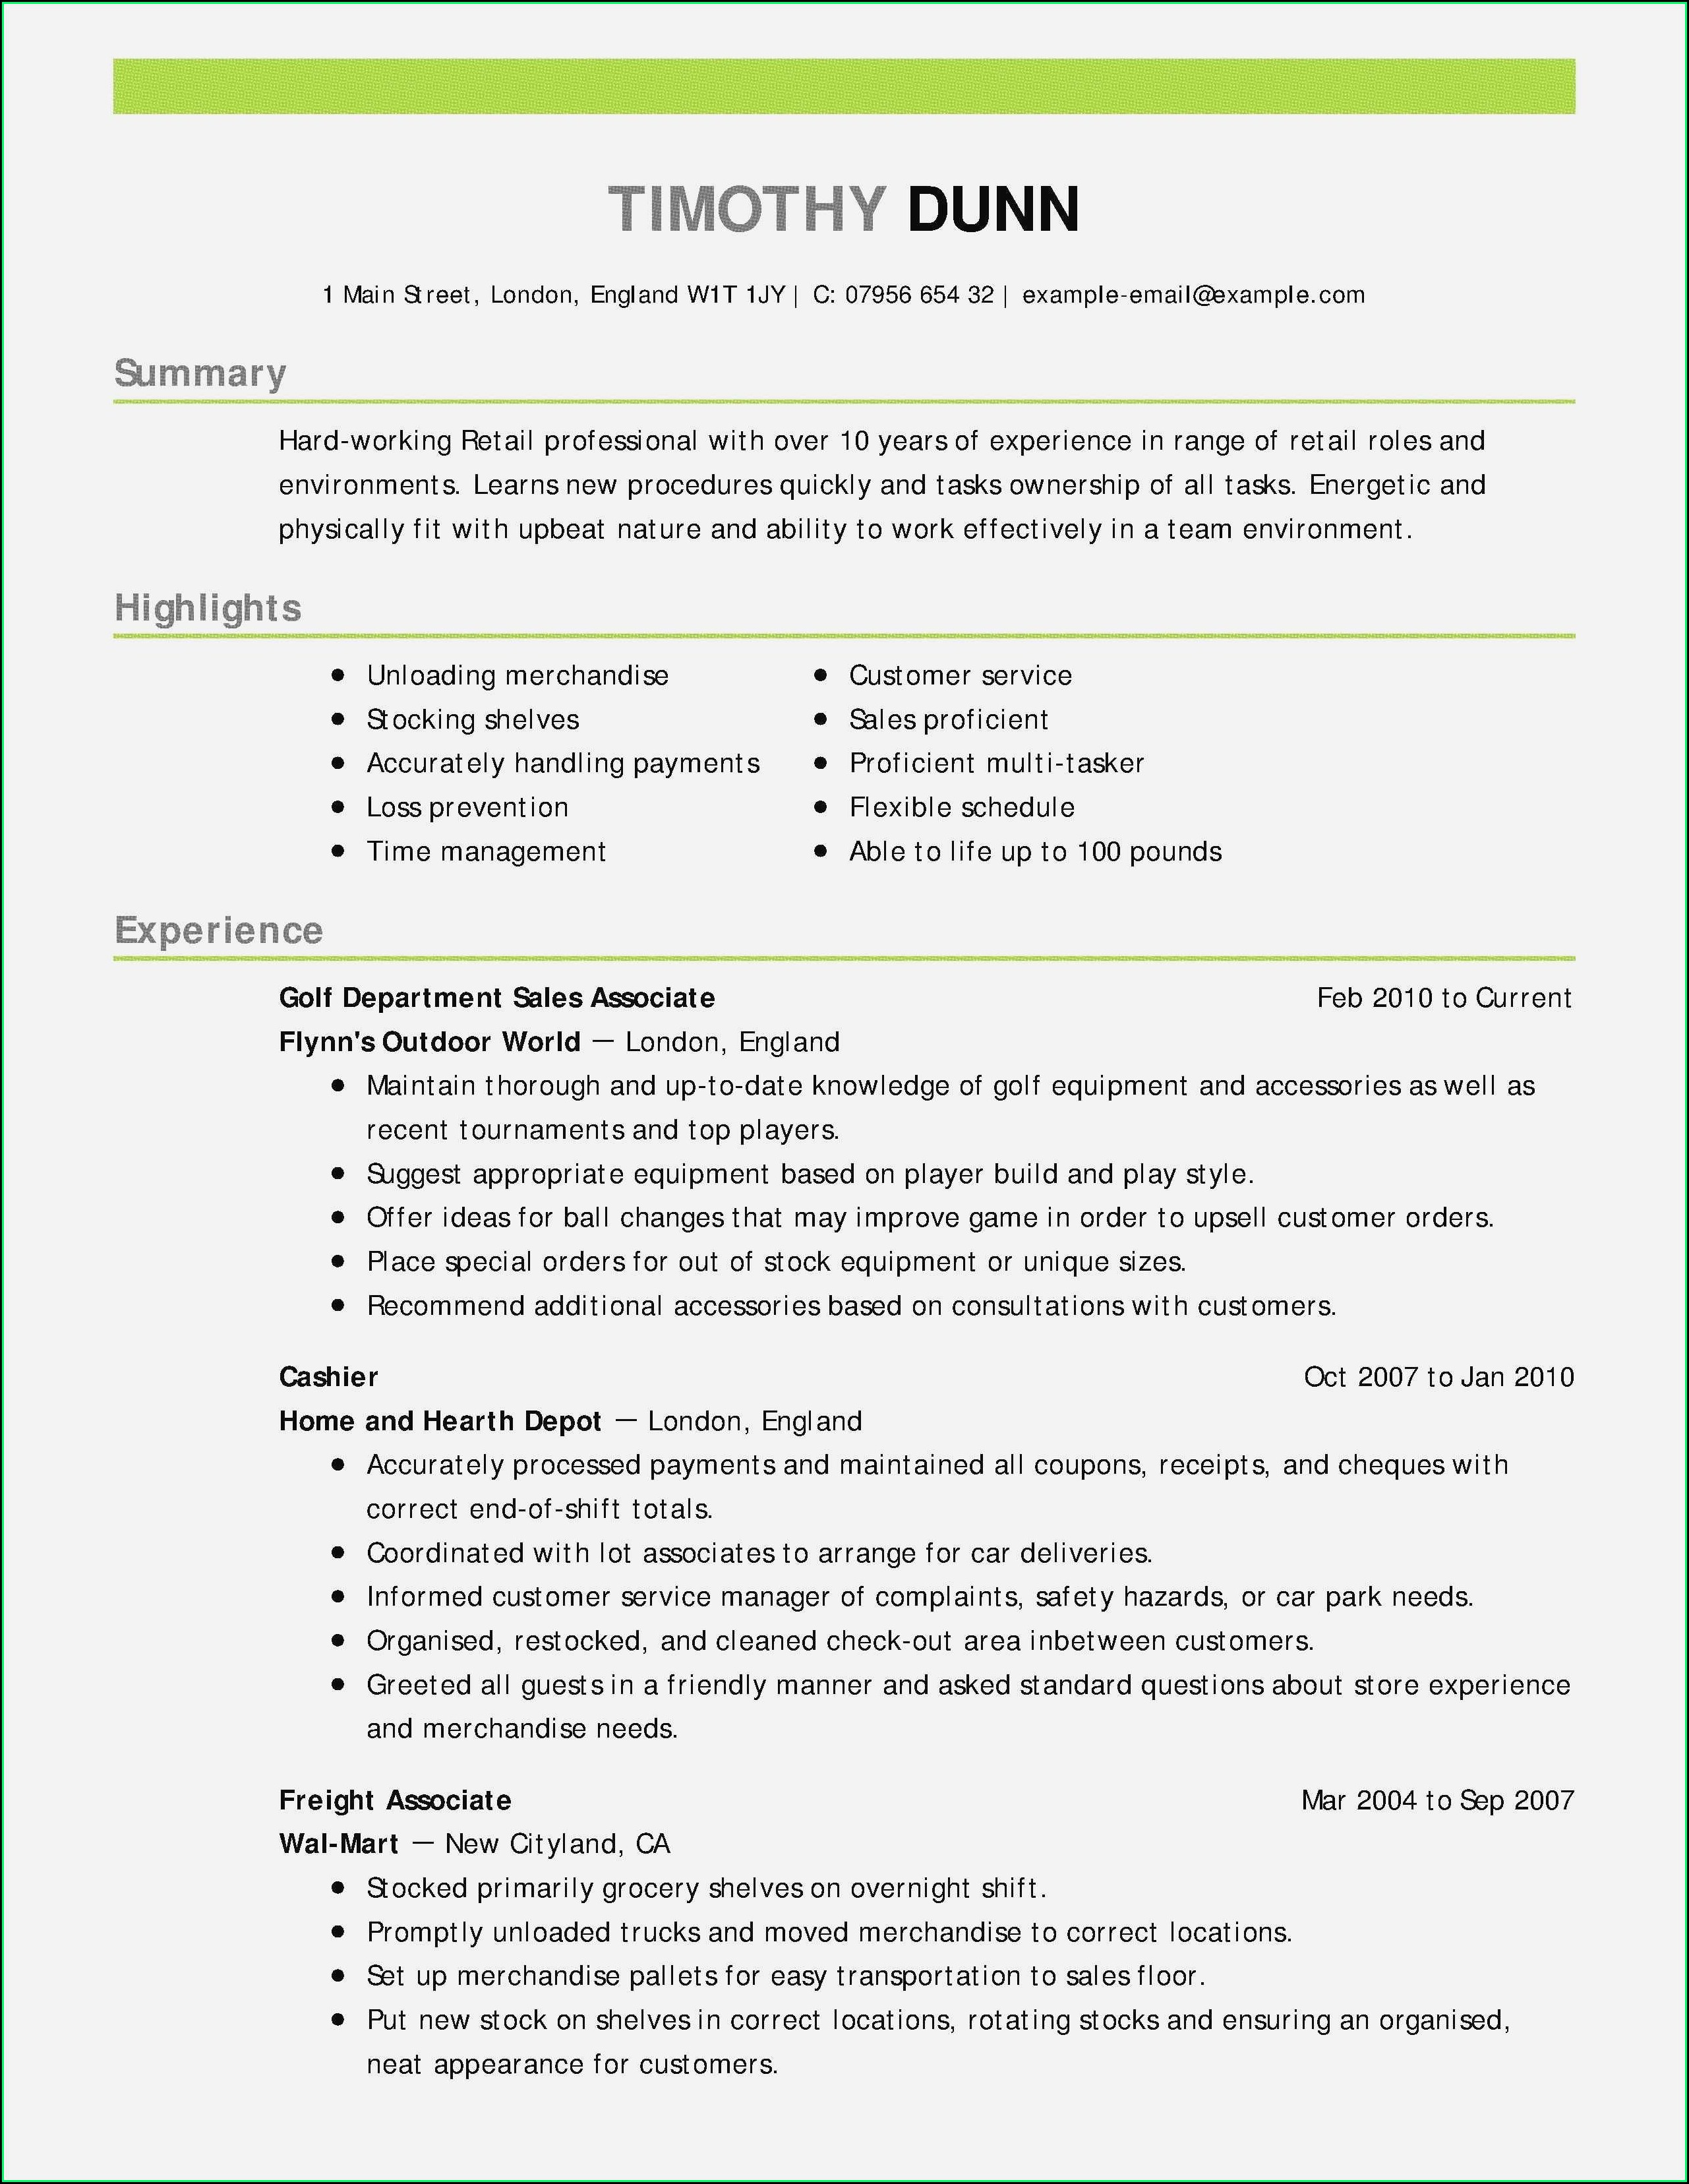 Free Blank Professional Resume Templates